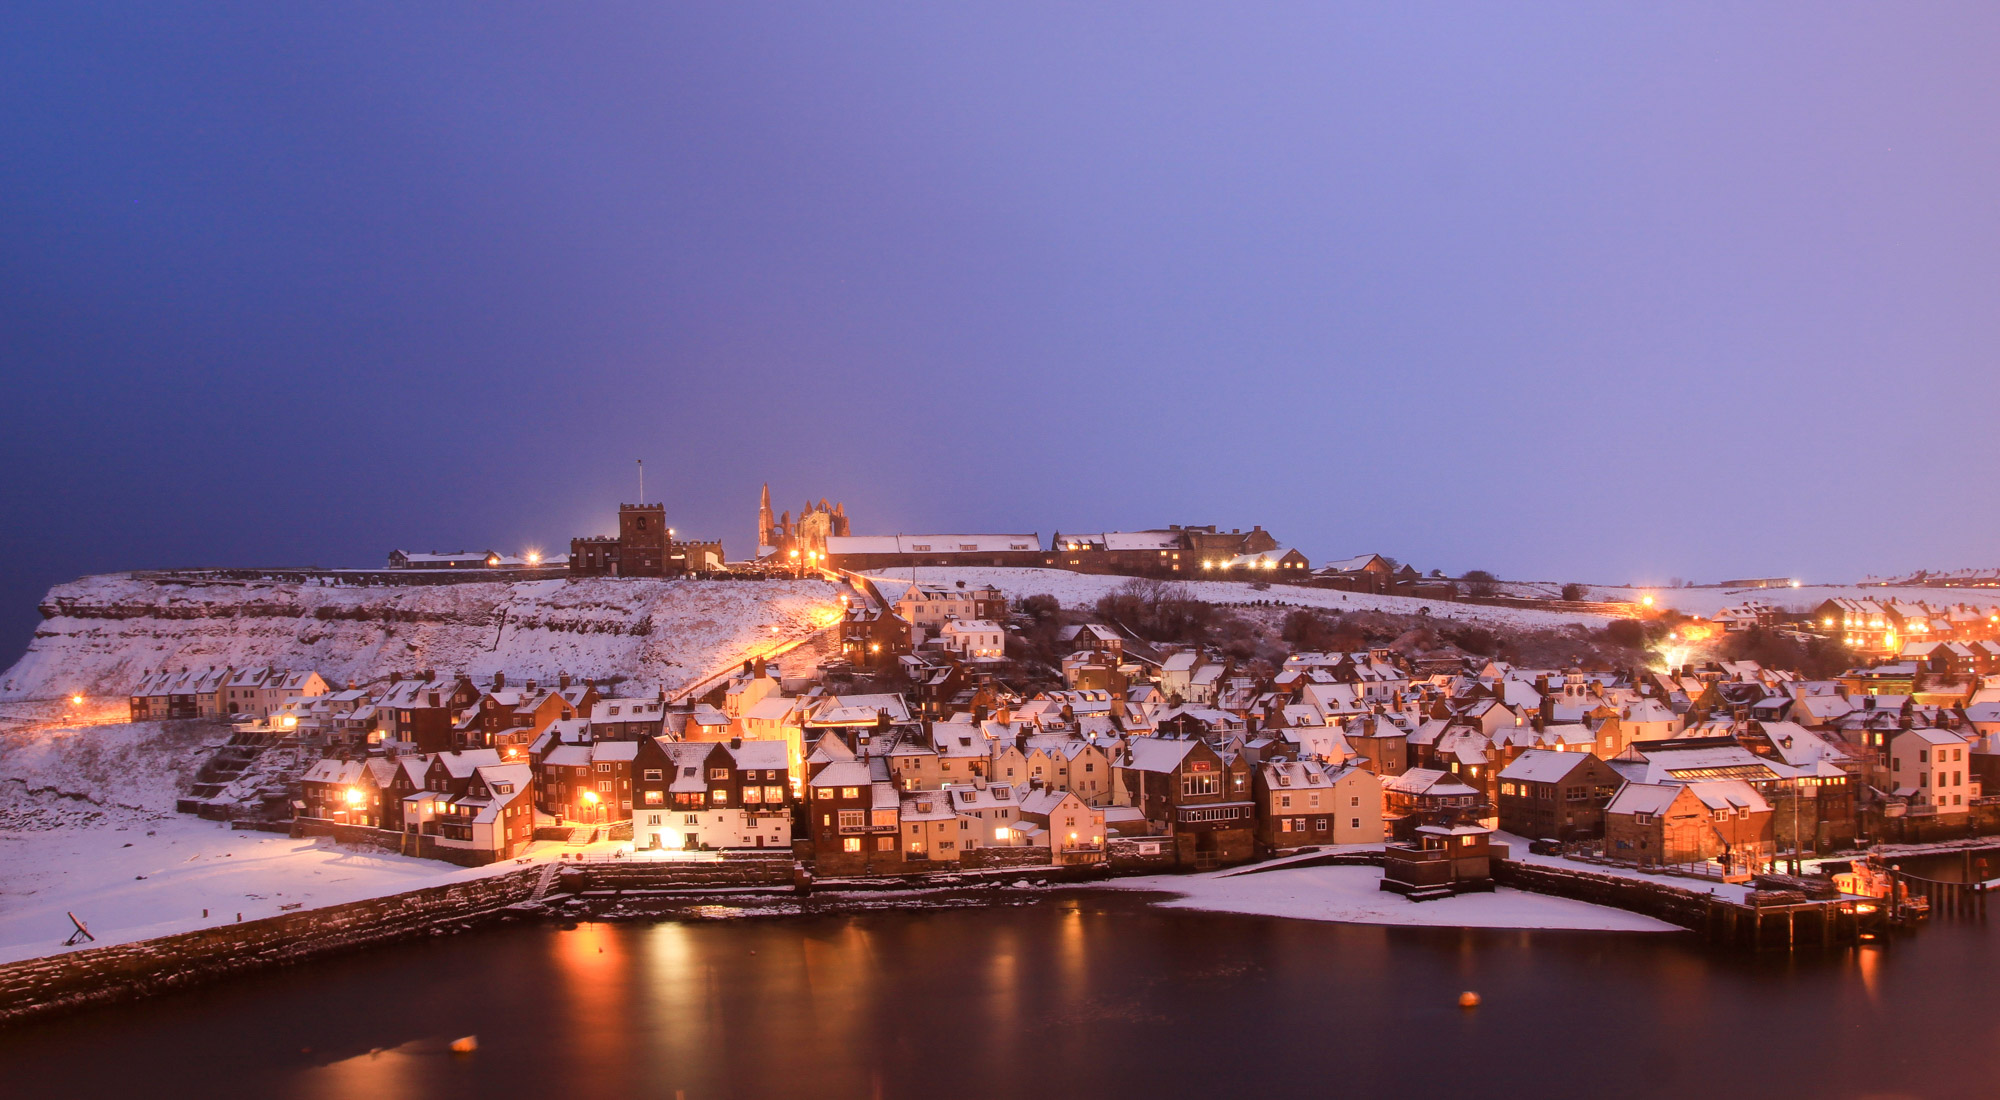 Whitby Harbour In The Snow. Whitby Christmas CArds